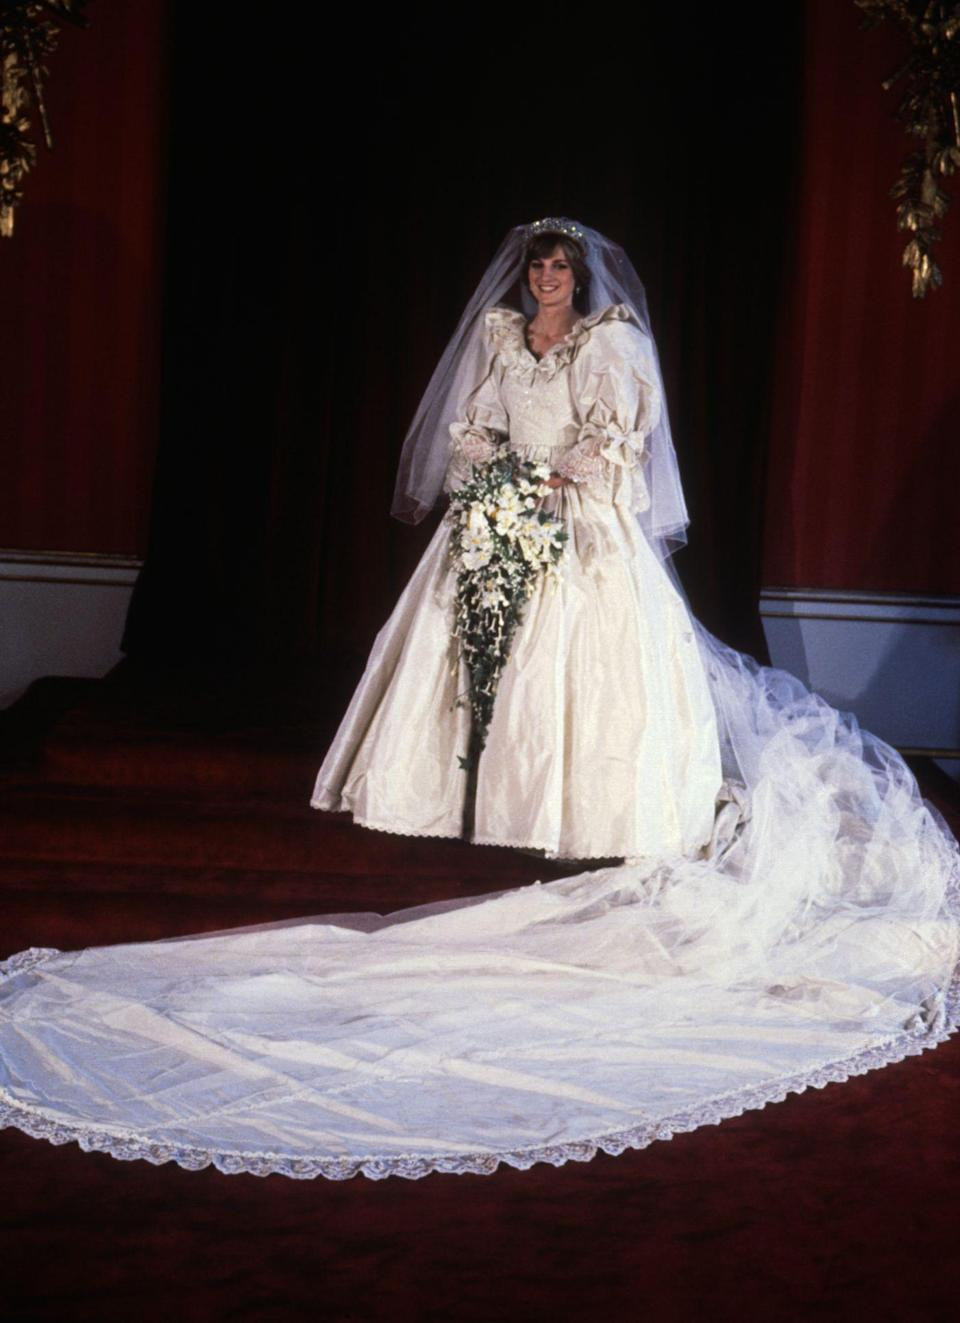 <p>Princess Diana on her wedding day in July 1981</p>